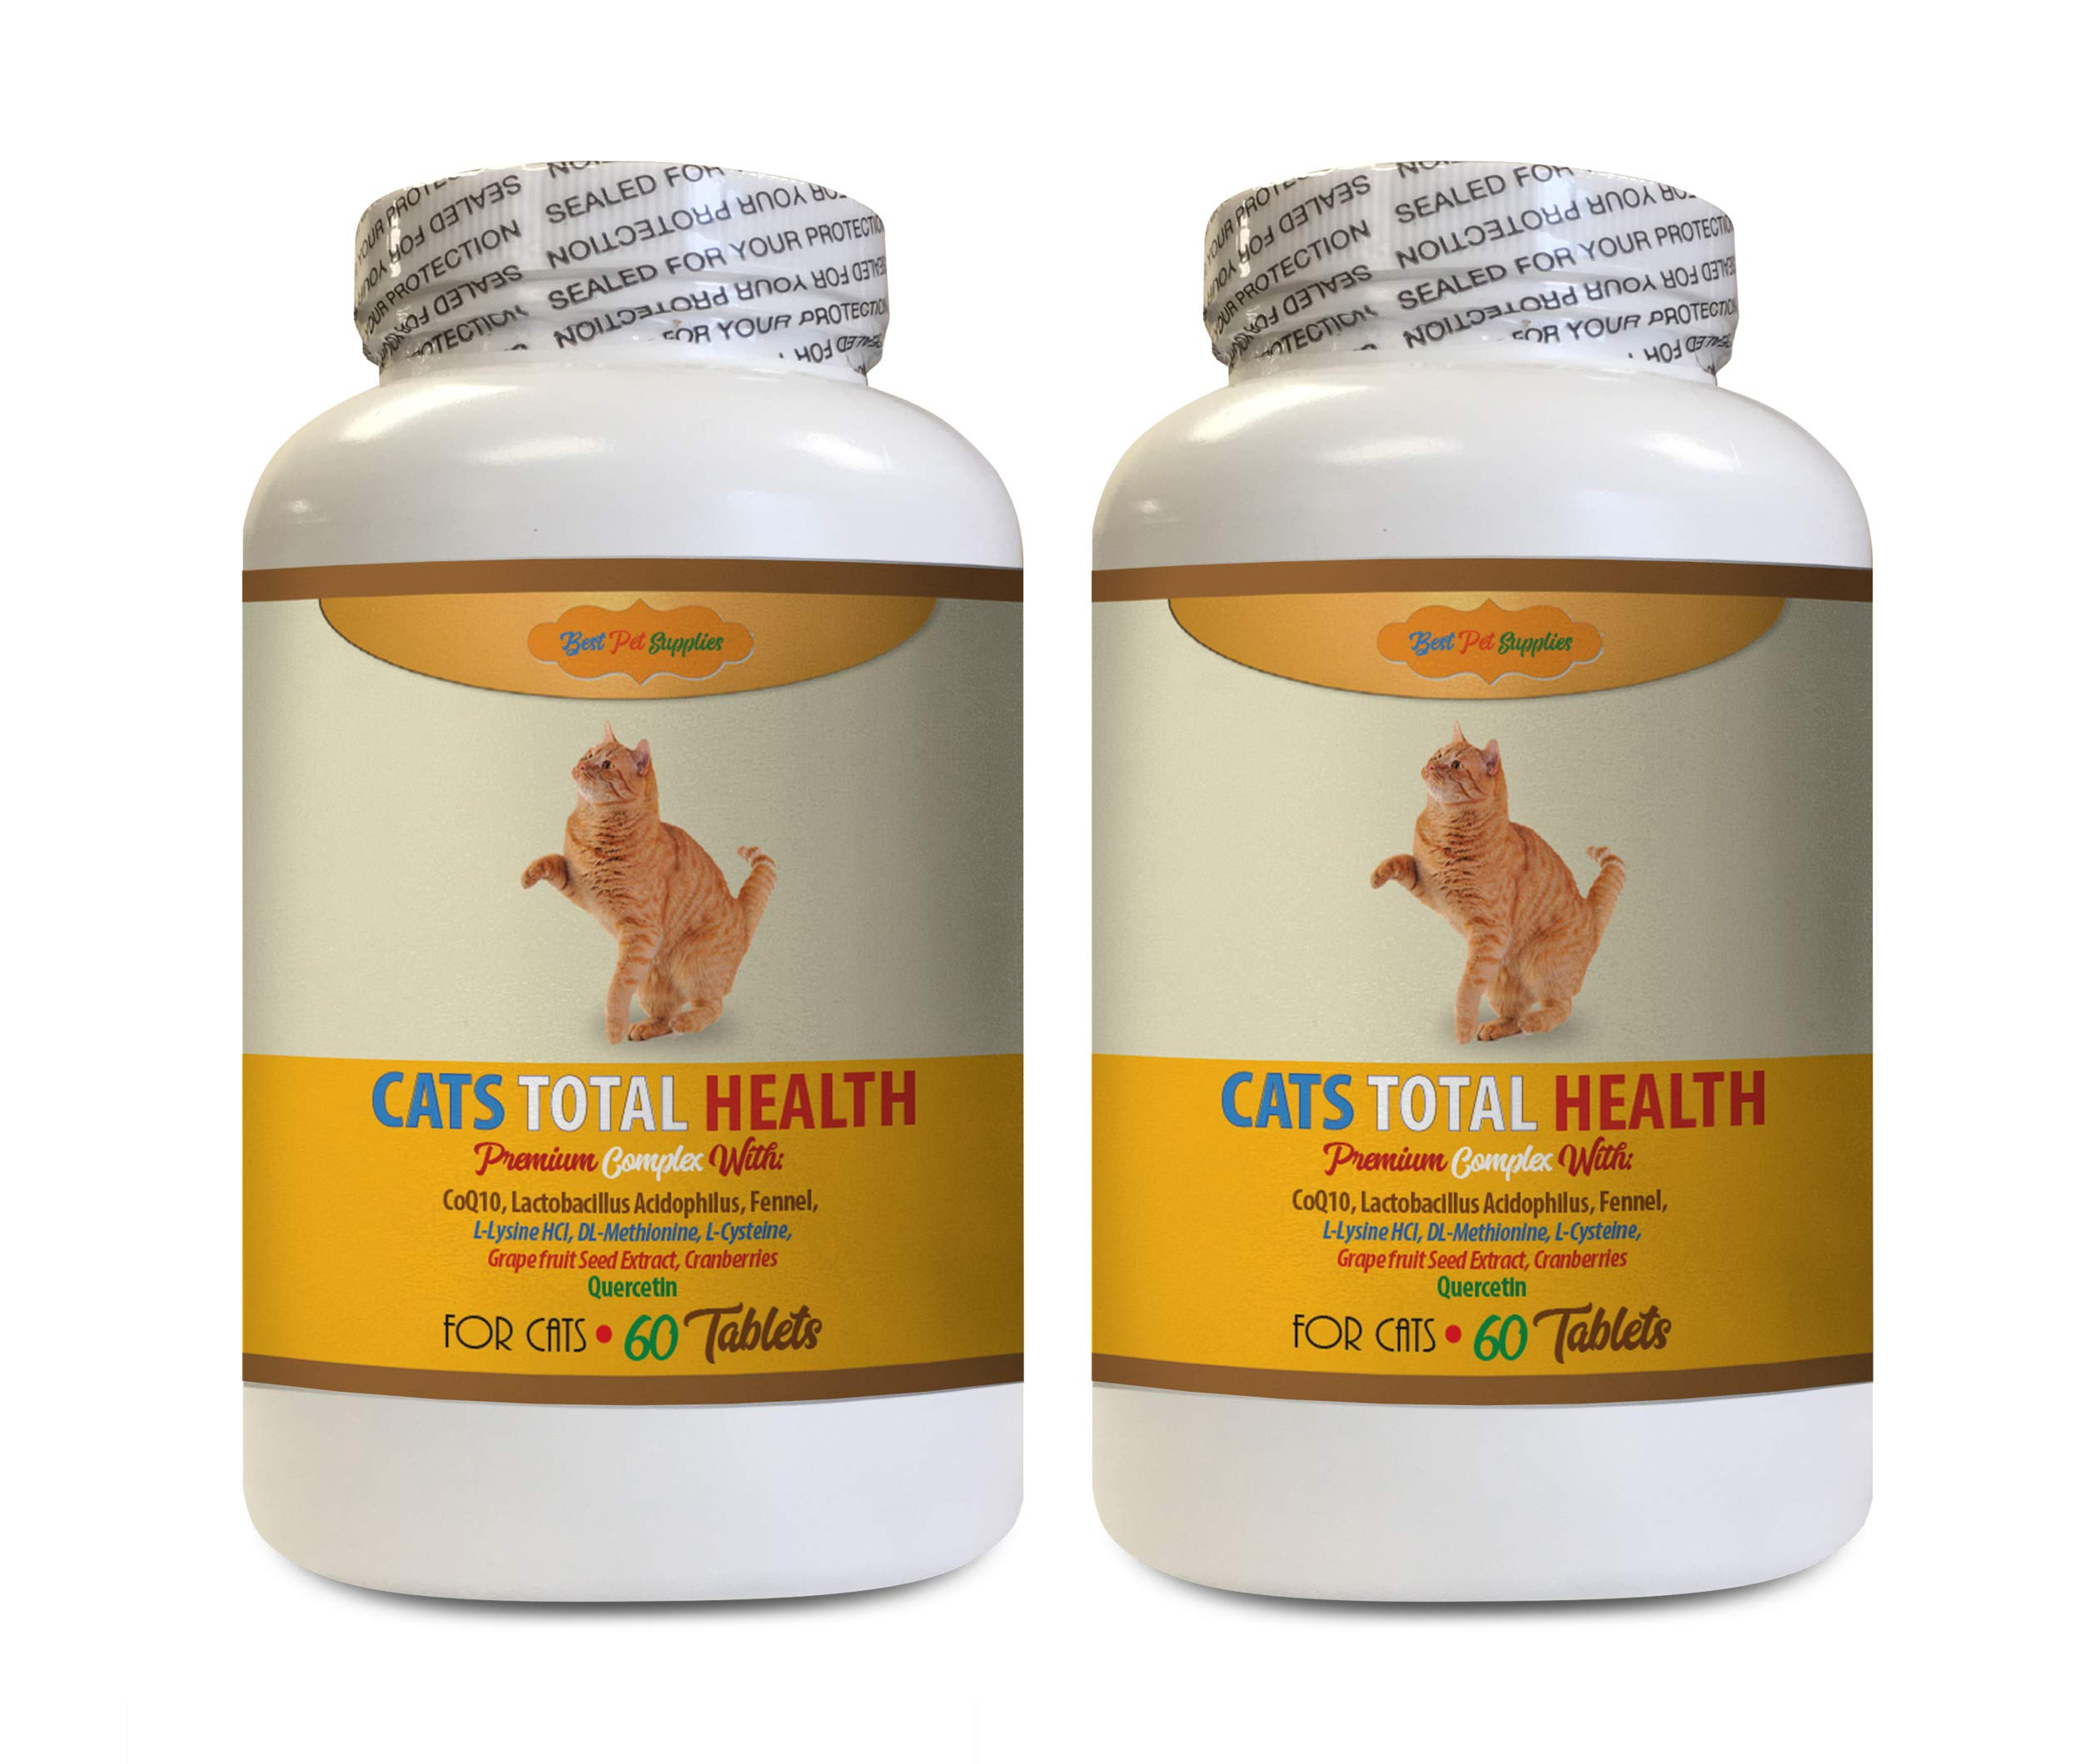 BEST PET SUPPLIES LLC cat Itchy Skin - Cats Total Health Complex - Premium Formula - Coat Joint Oral Eye Immune Health - cat Immune Booster Treats - 120 Tables (2 Bottles) by BEST PET SUPPLIES LLC